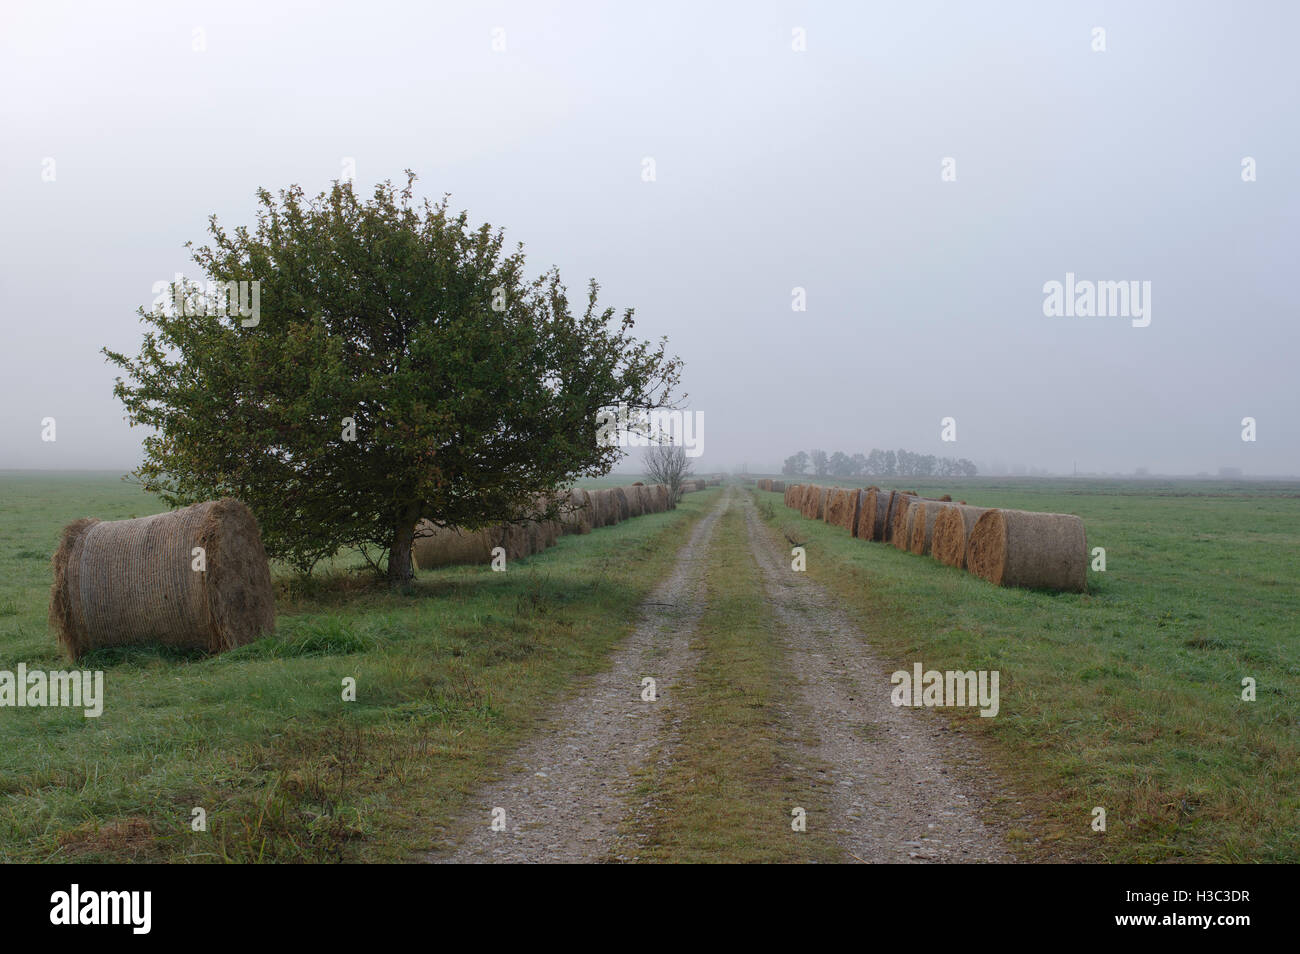 Estonian foggy morning landscape with apple tree, gravel and grass balls. - Stock Image